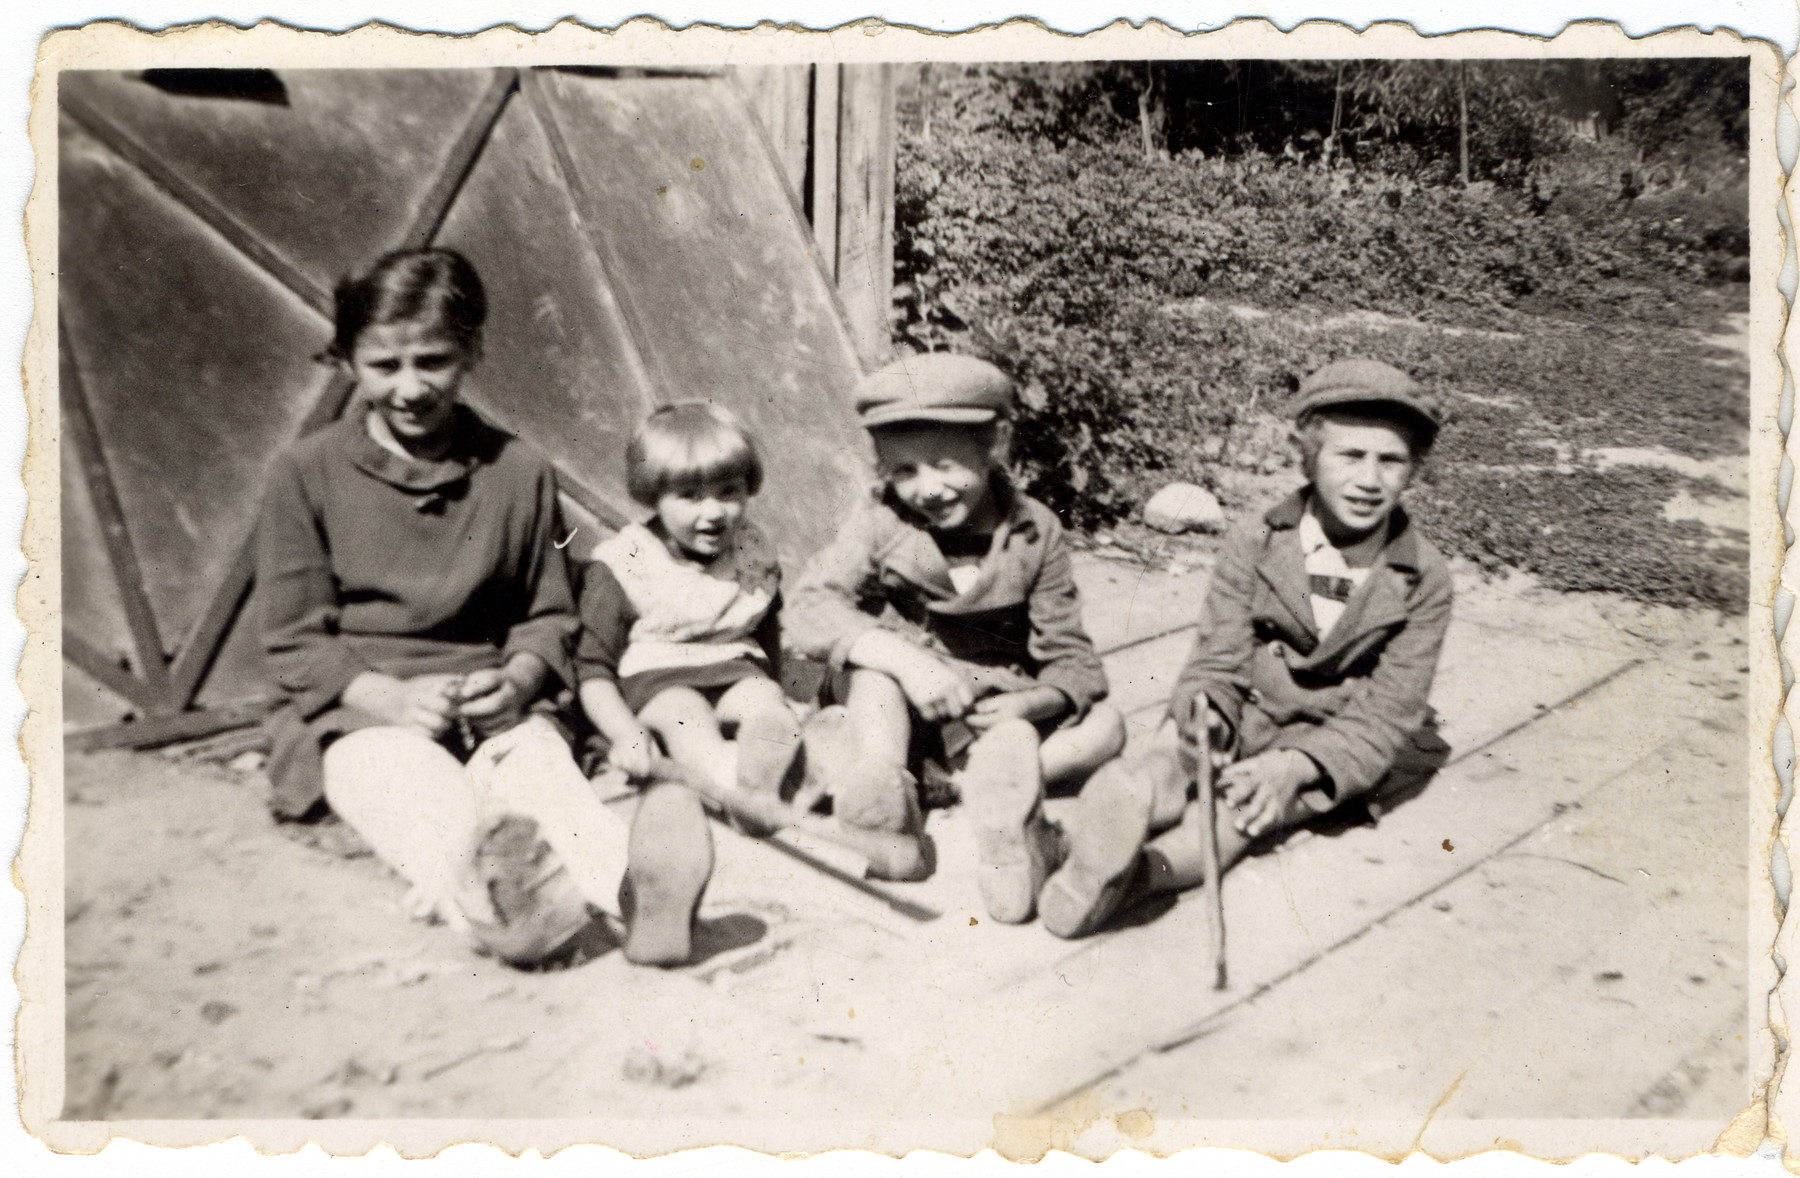 Four Weinstein children (nieces and nephews of the donor) pose outside.  All later perished in the Holocaust.  Pictured left to right are Malka, Blimcsi, Shaul, and David Weinstein.